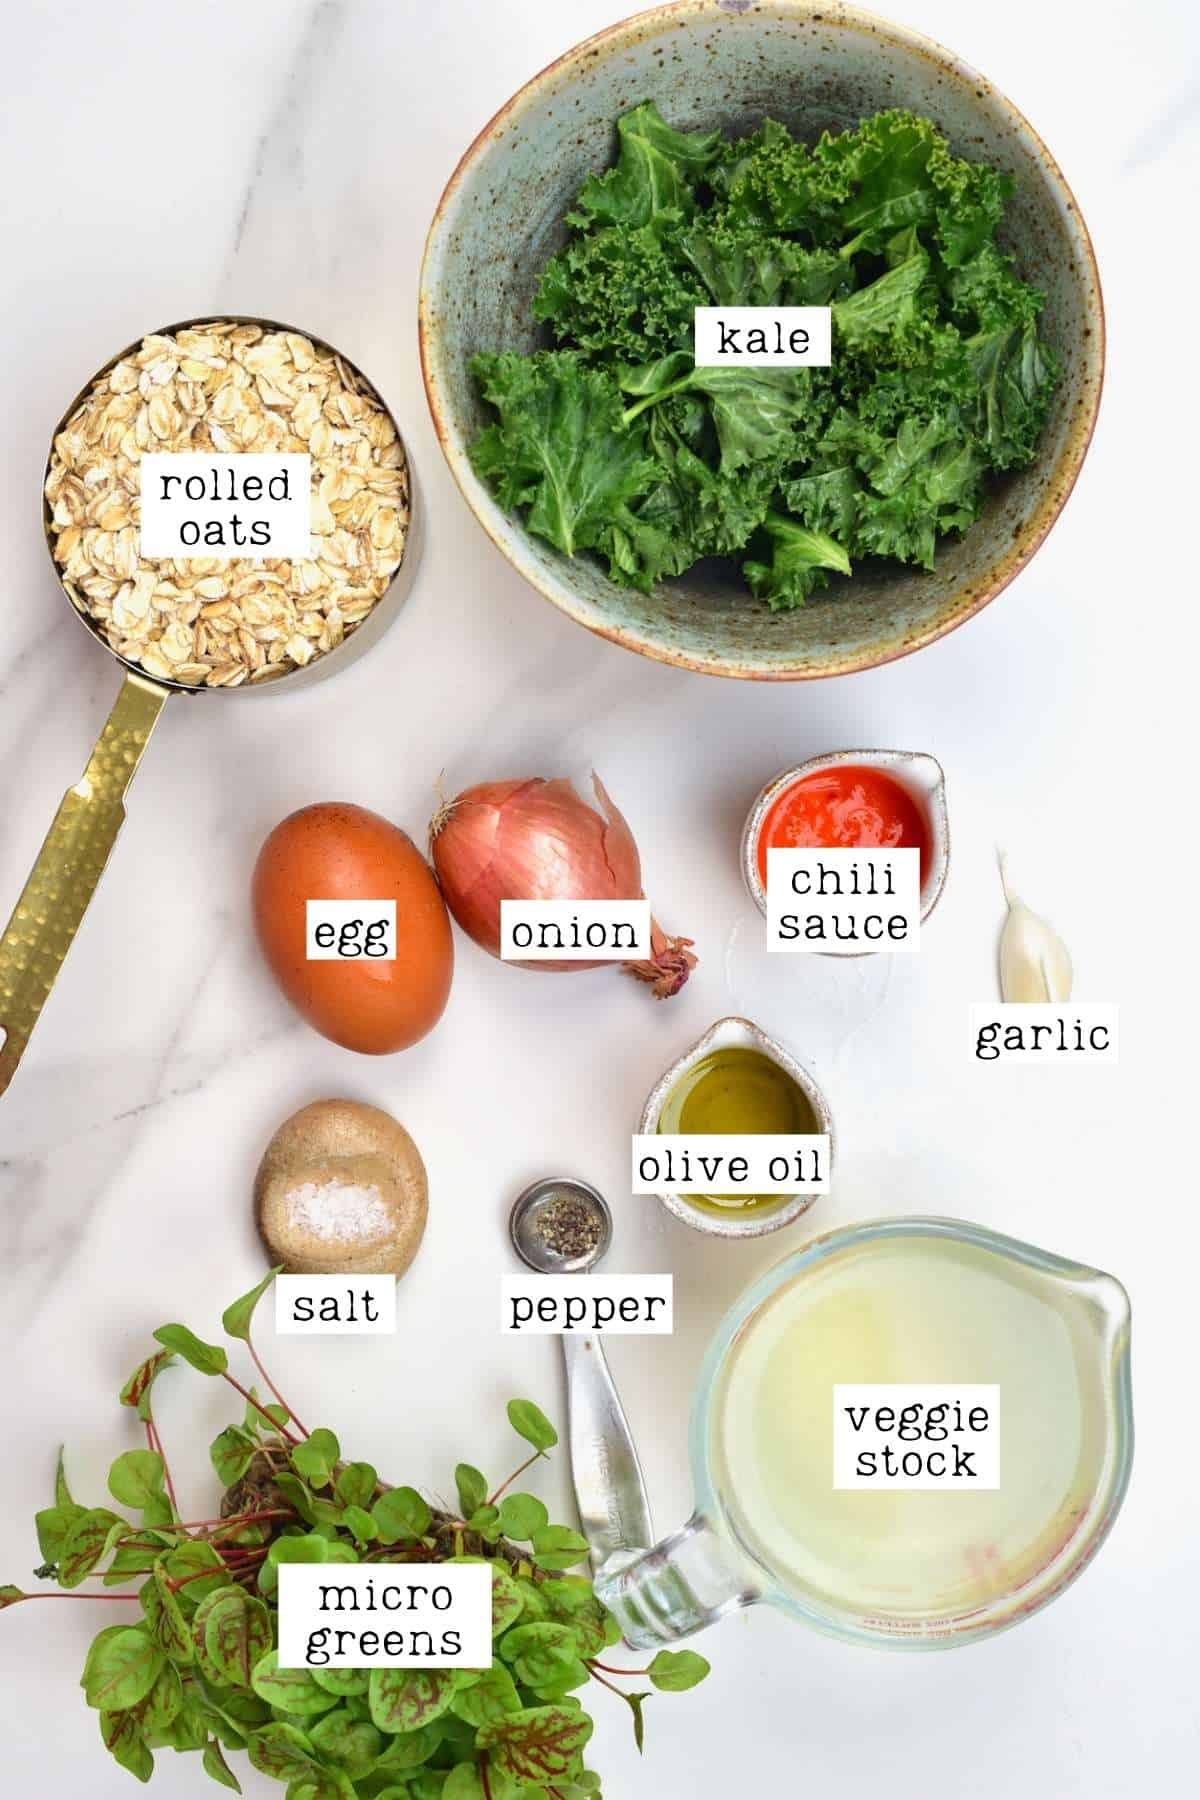 Ingredients for egg oatmeal